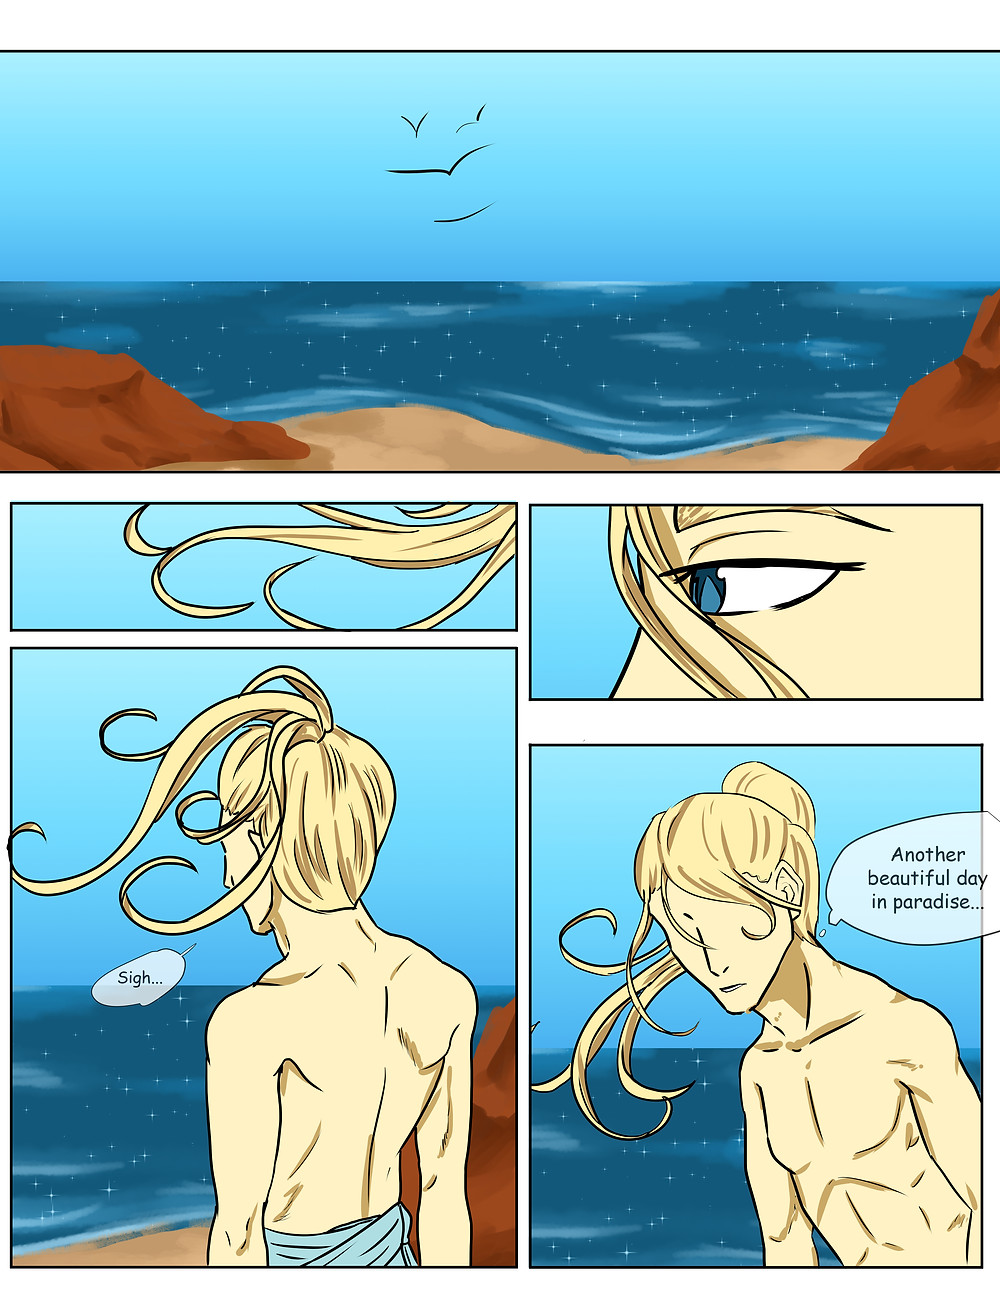 """An opening, full color page from The White Rose of Rome. Frames show a beach scene, with Venus standing on the shore. He sighs and says """"Another beautiful day in paradise..."""""""